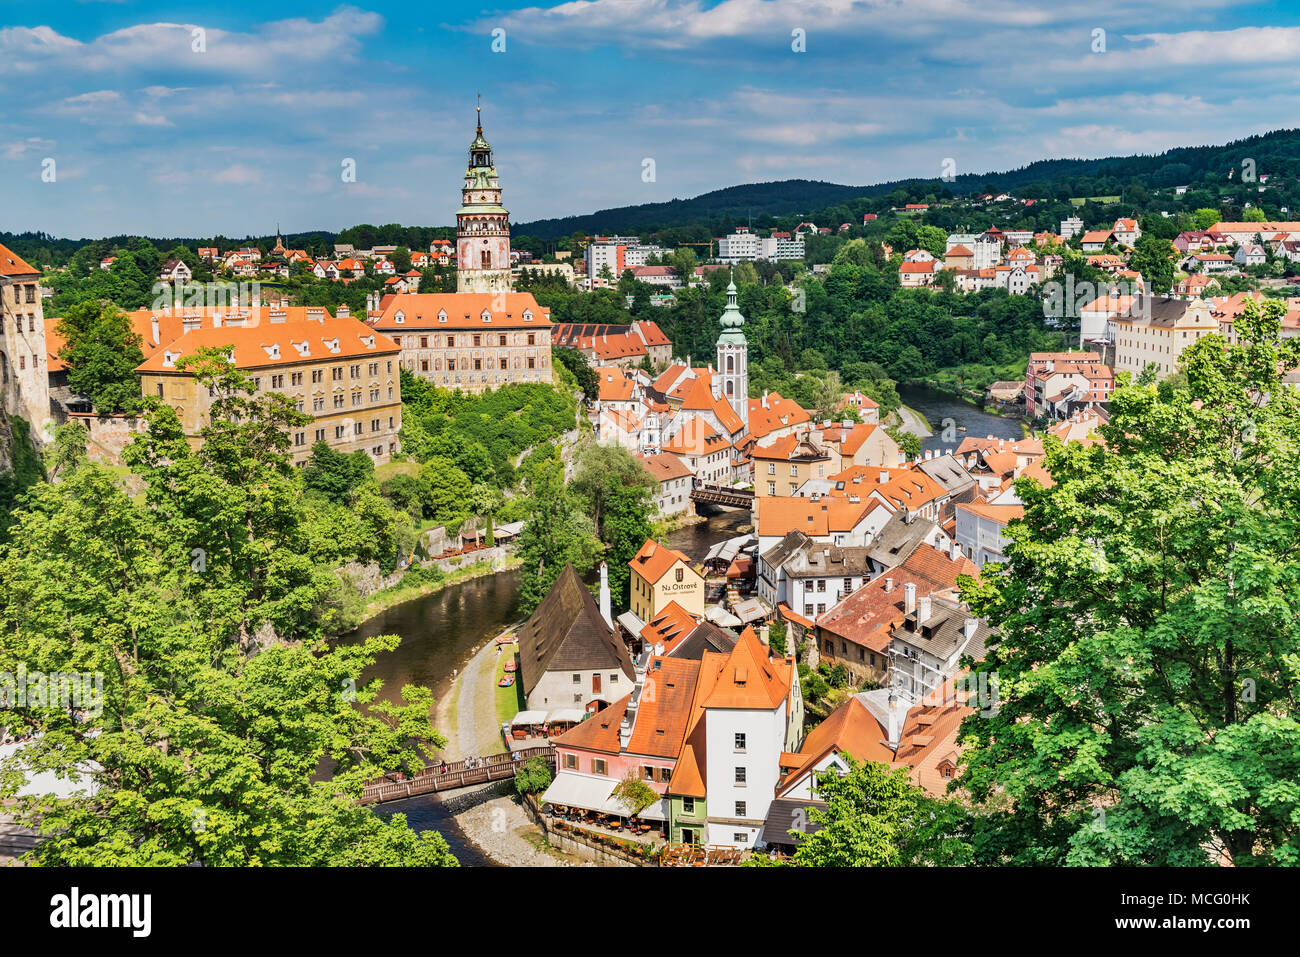 View of the old town and the Castle Cesky Krumlov, St. Jost church and the River Vltava in Bohemia, Jihocesky Kraj, Czech Republic, Europe - Stock Image